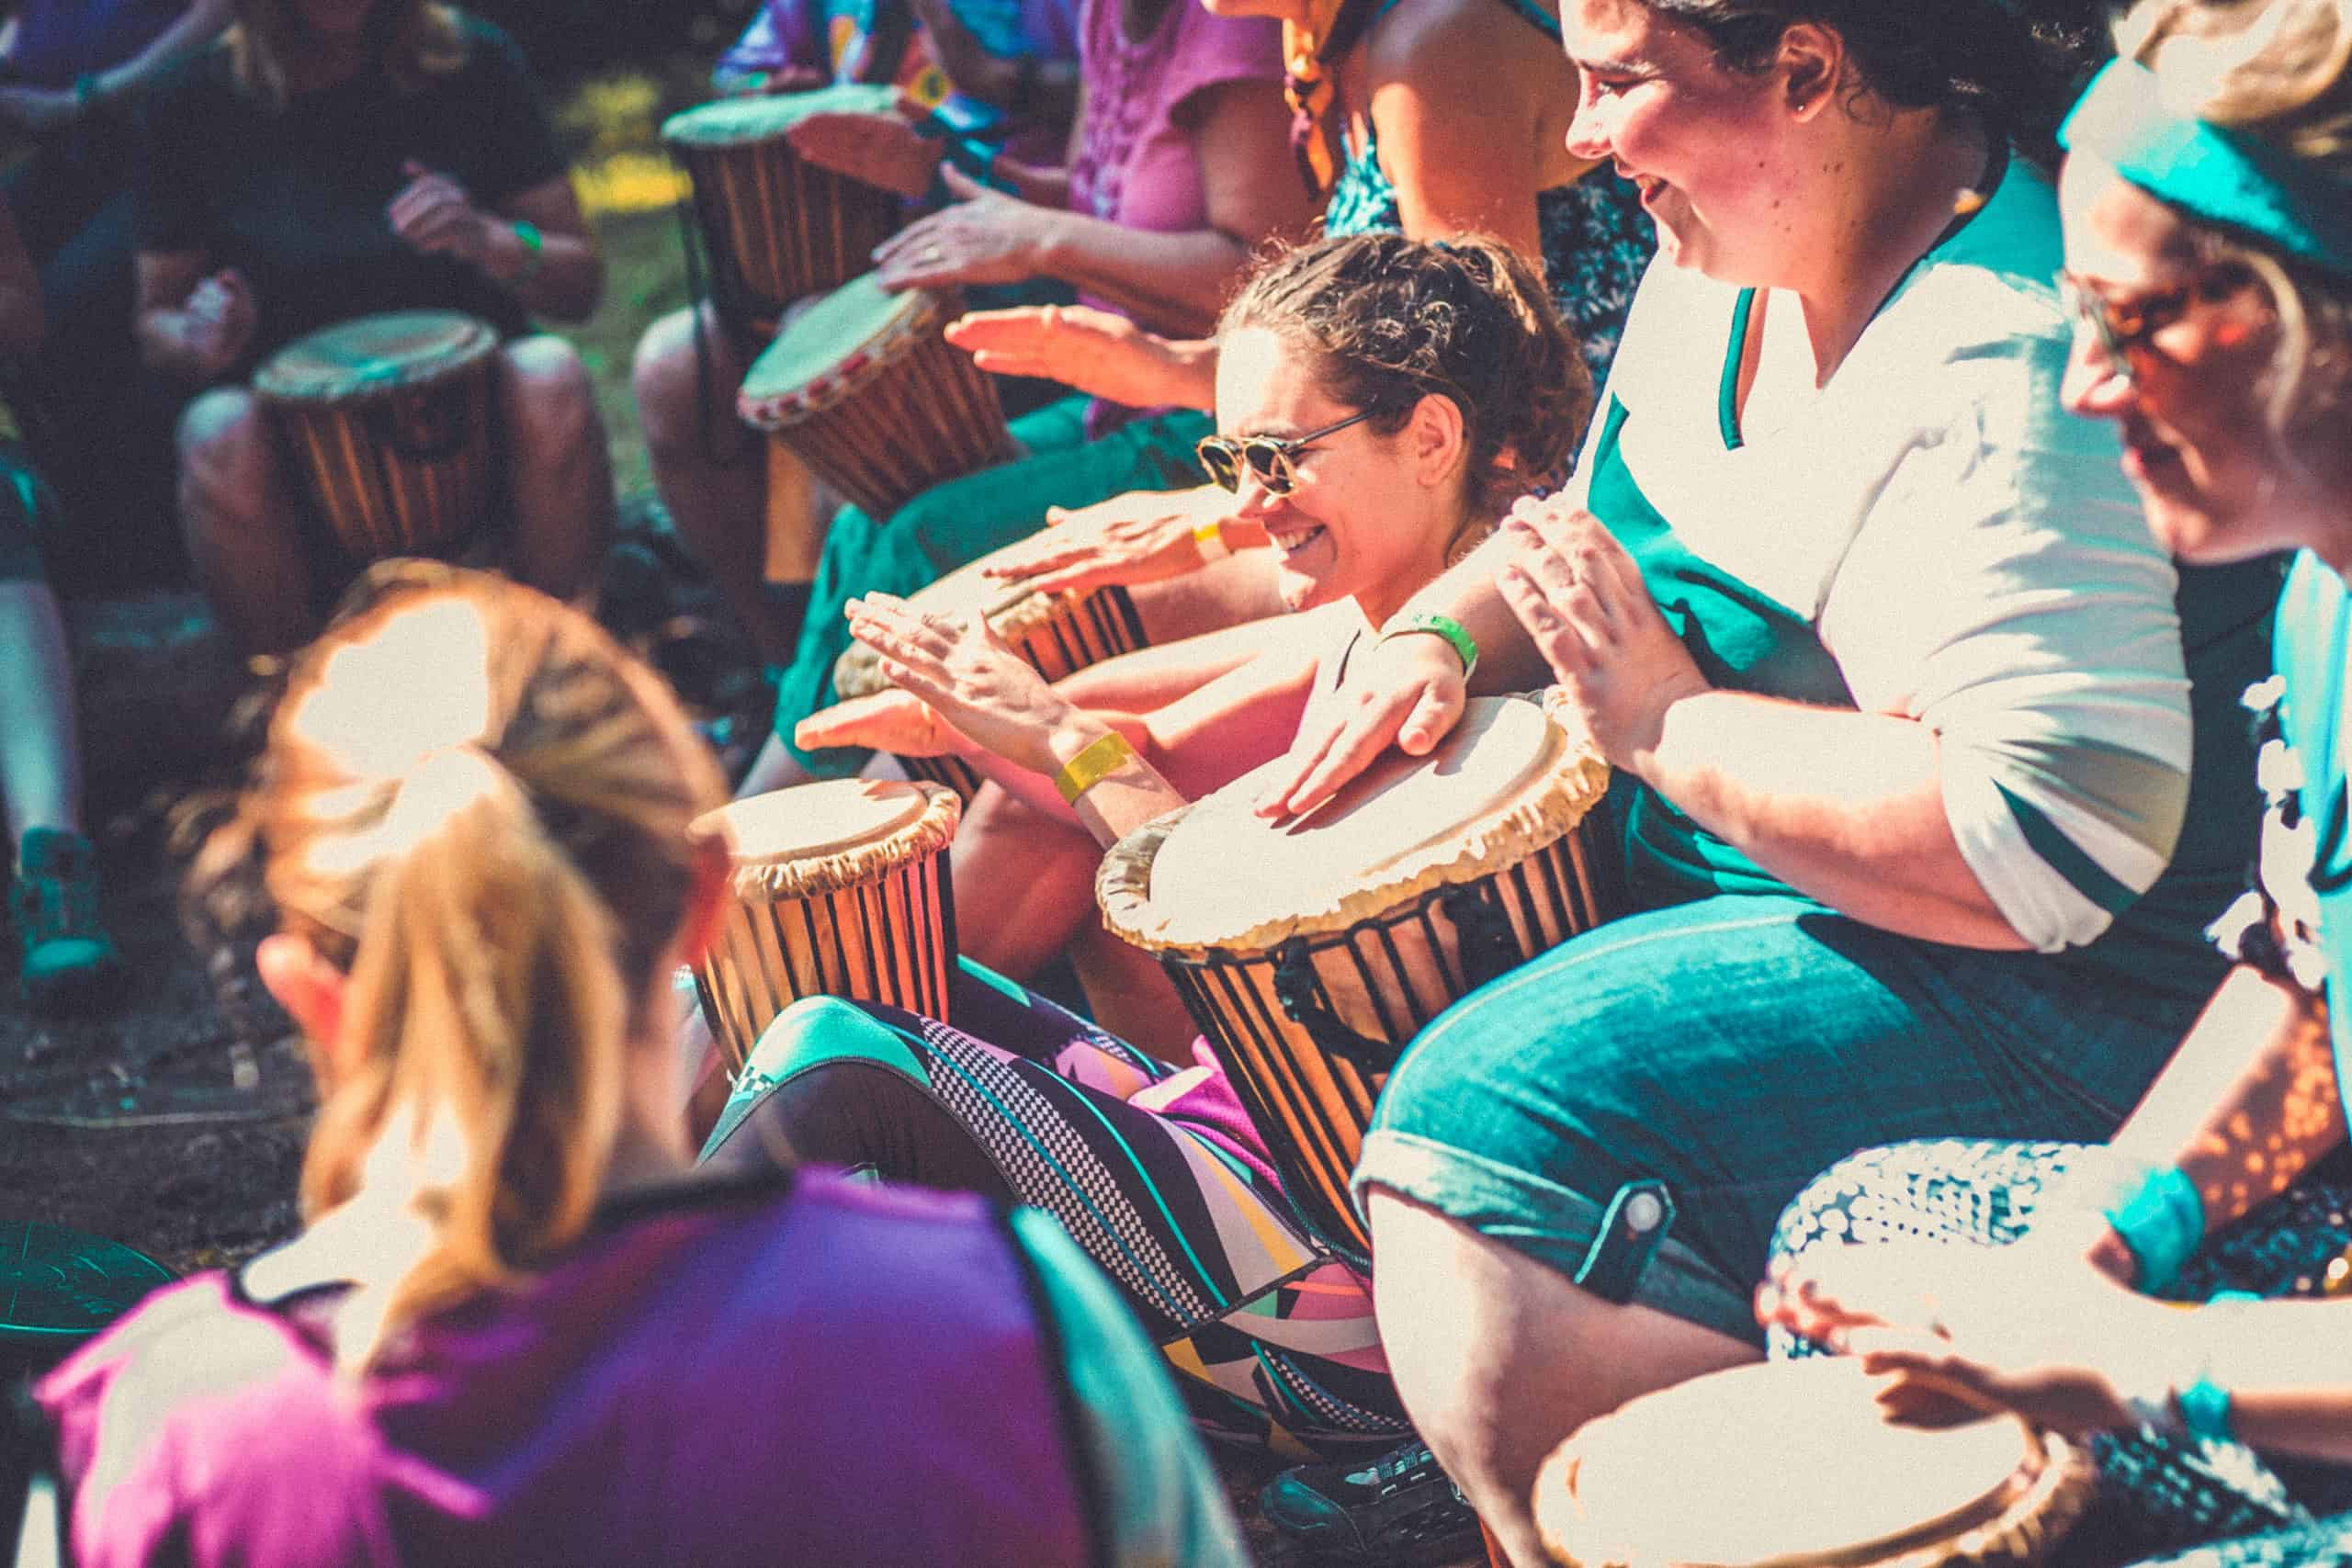 People enjoying the tribal drumming activity at Camp Wildfire. A summer weekend break in a forest near London and Kent. An outdoor woodland retreat featuring adventure activities, live music, DJs, parties and camping. Half summer adventure activity camp, half music festival, for adults only.